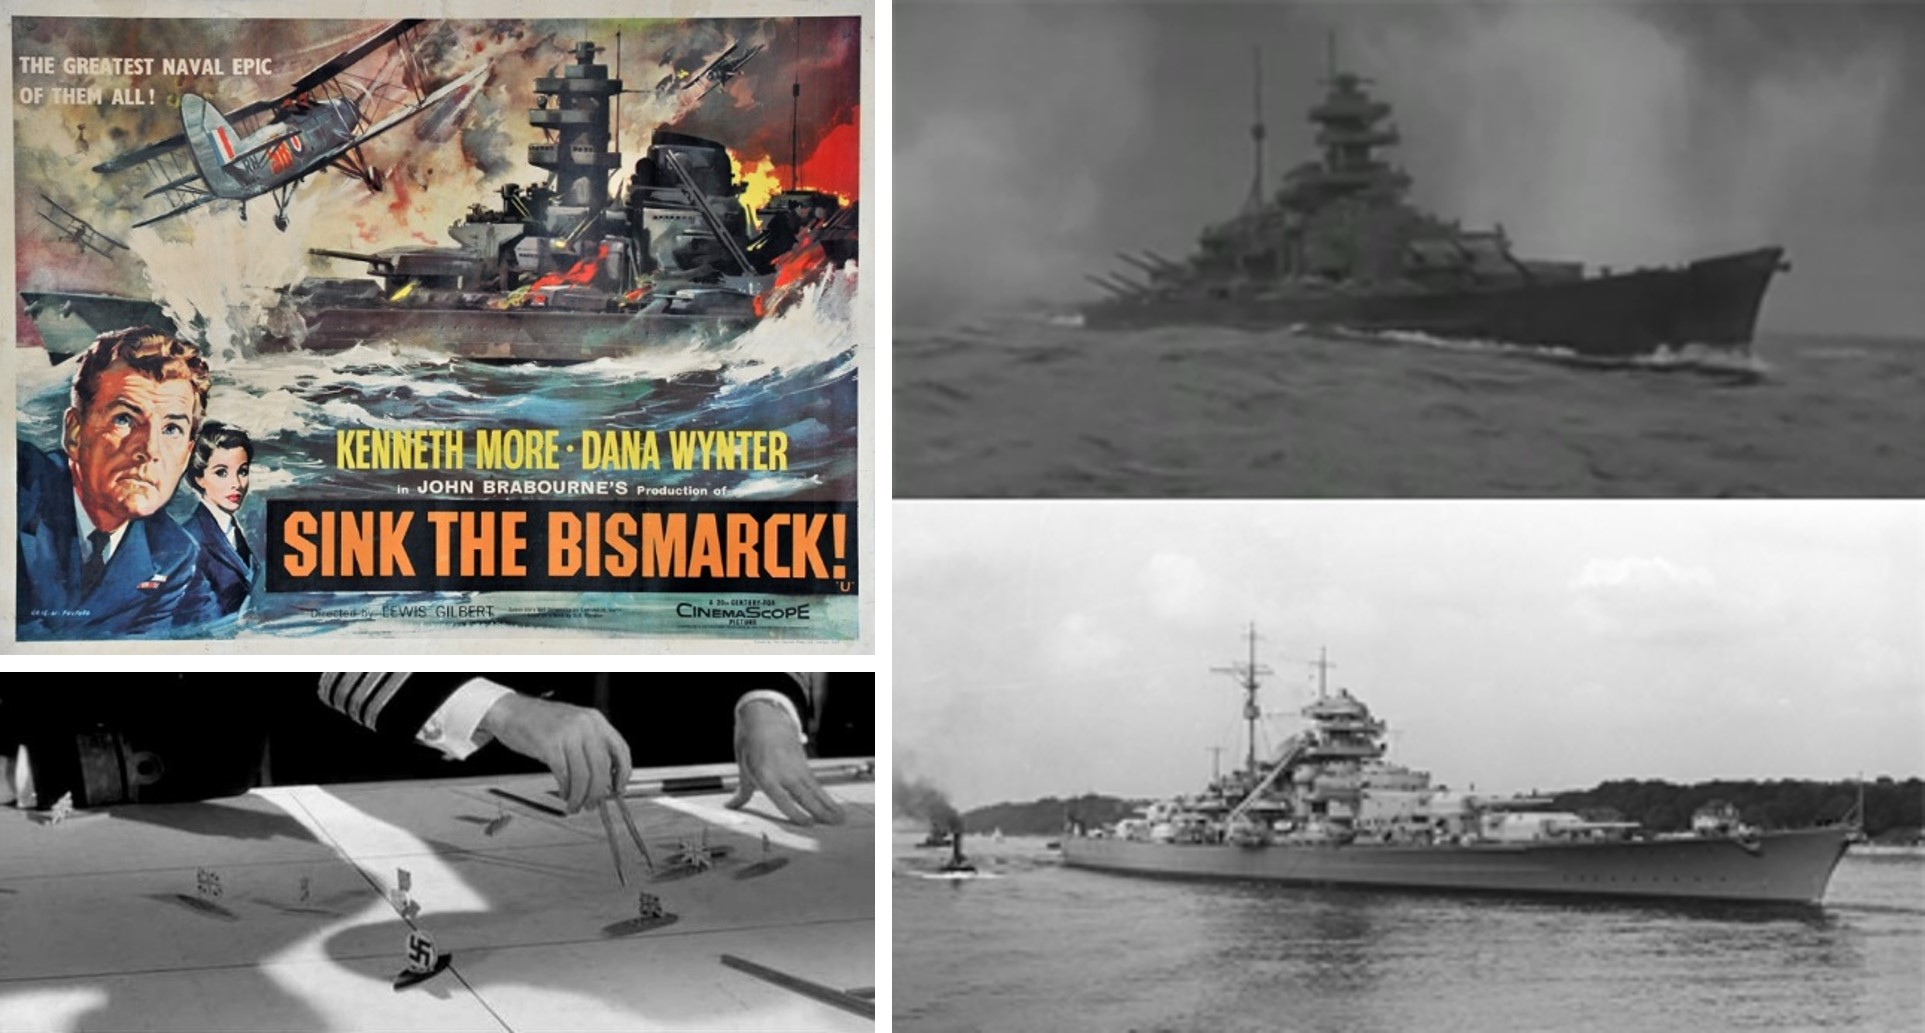 sink the bismarck a movie with an unrivaled consistency